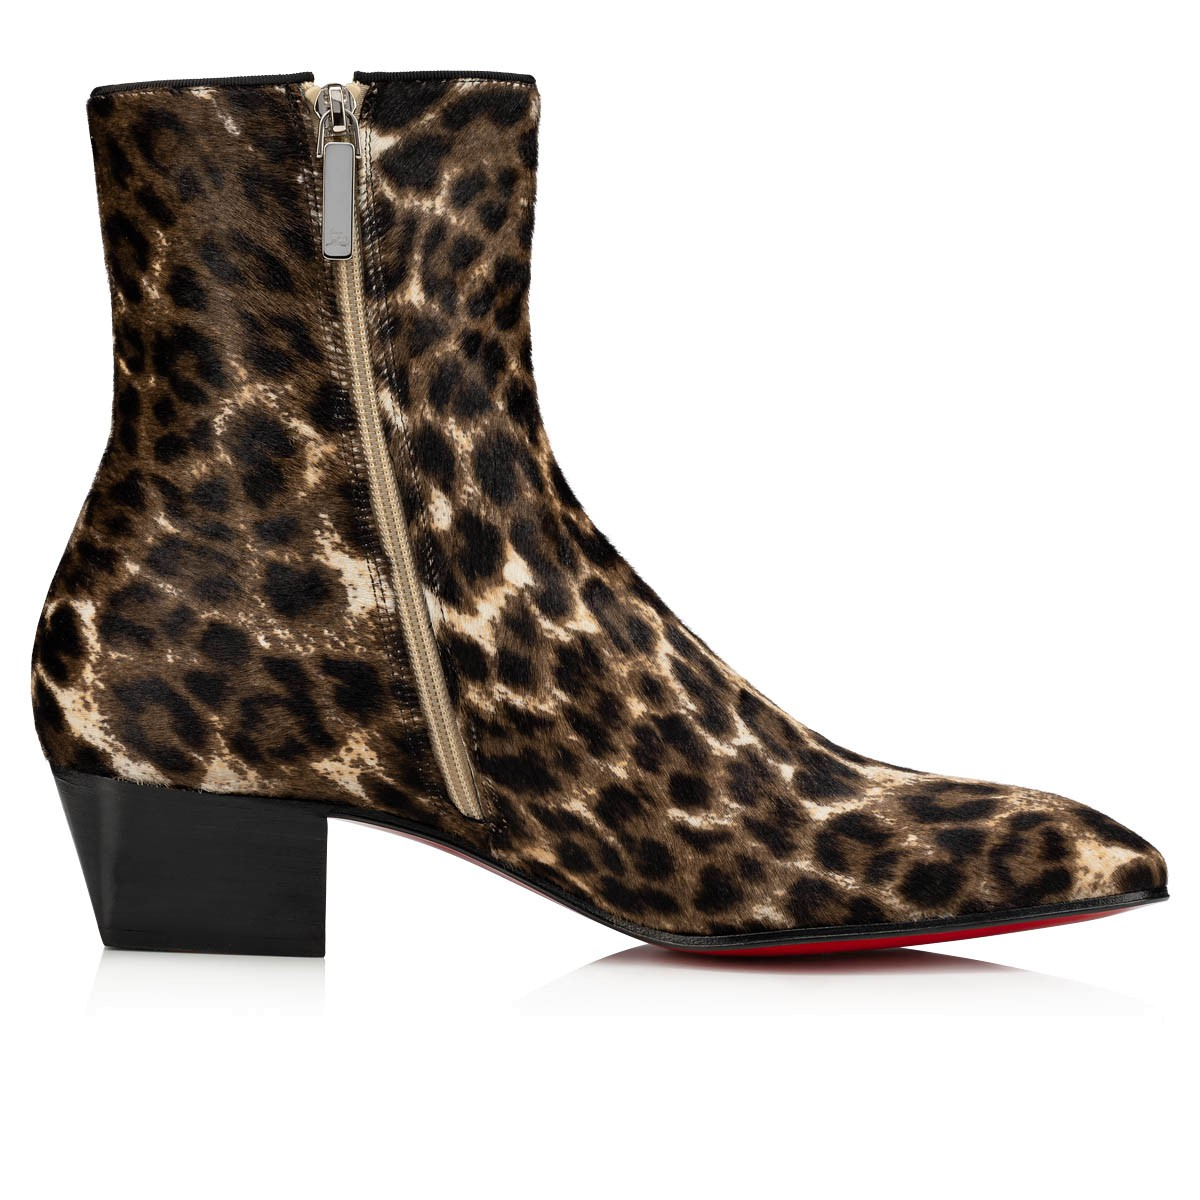 Shoes - Jolly Orlato Flat - Christian Louboutin